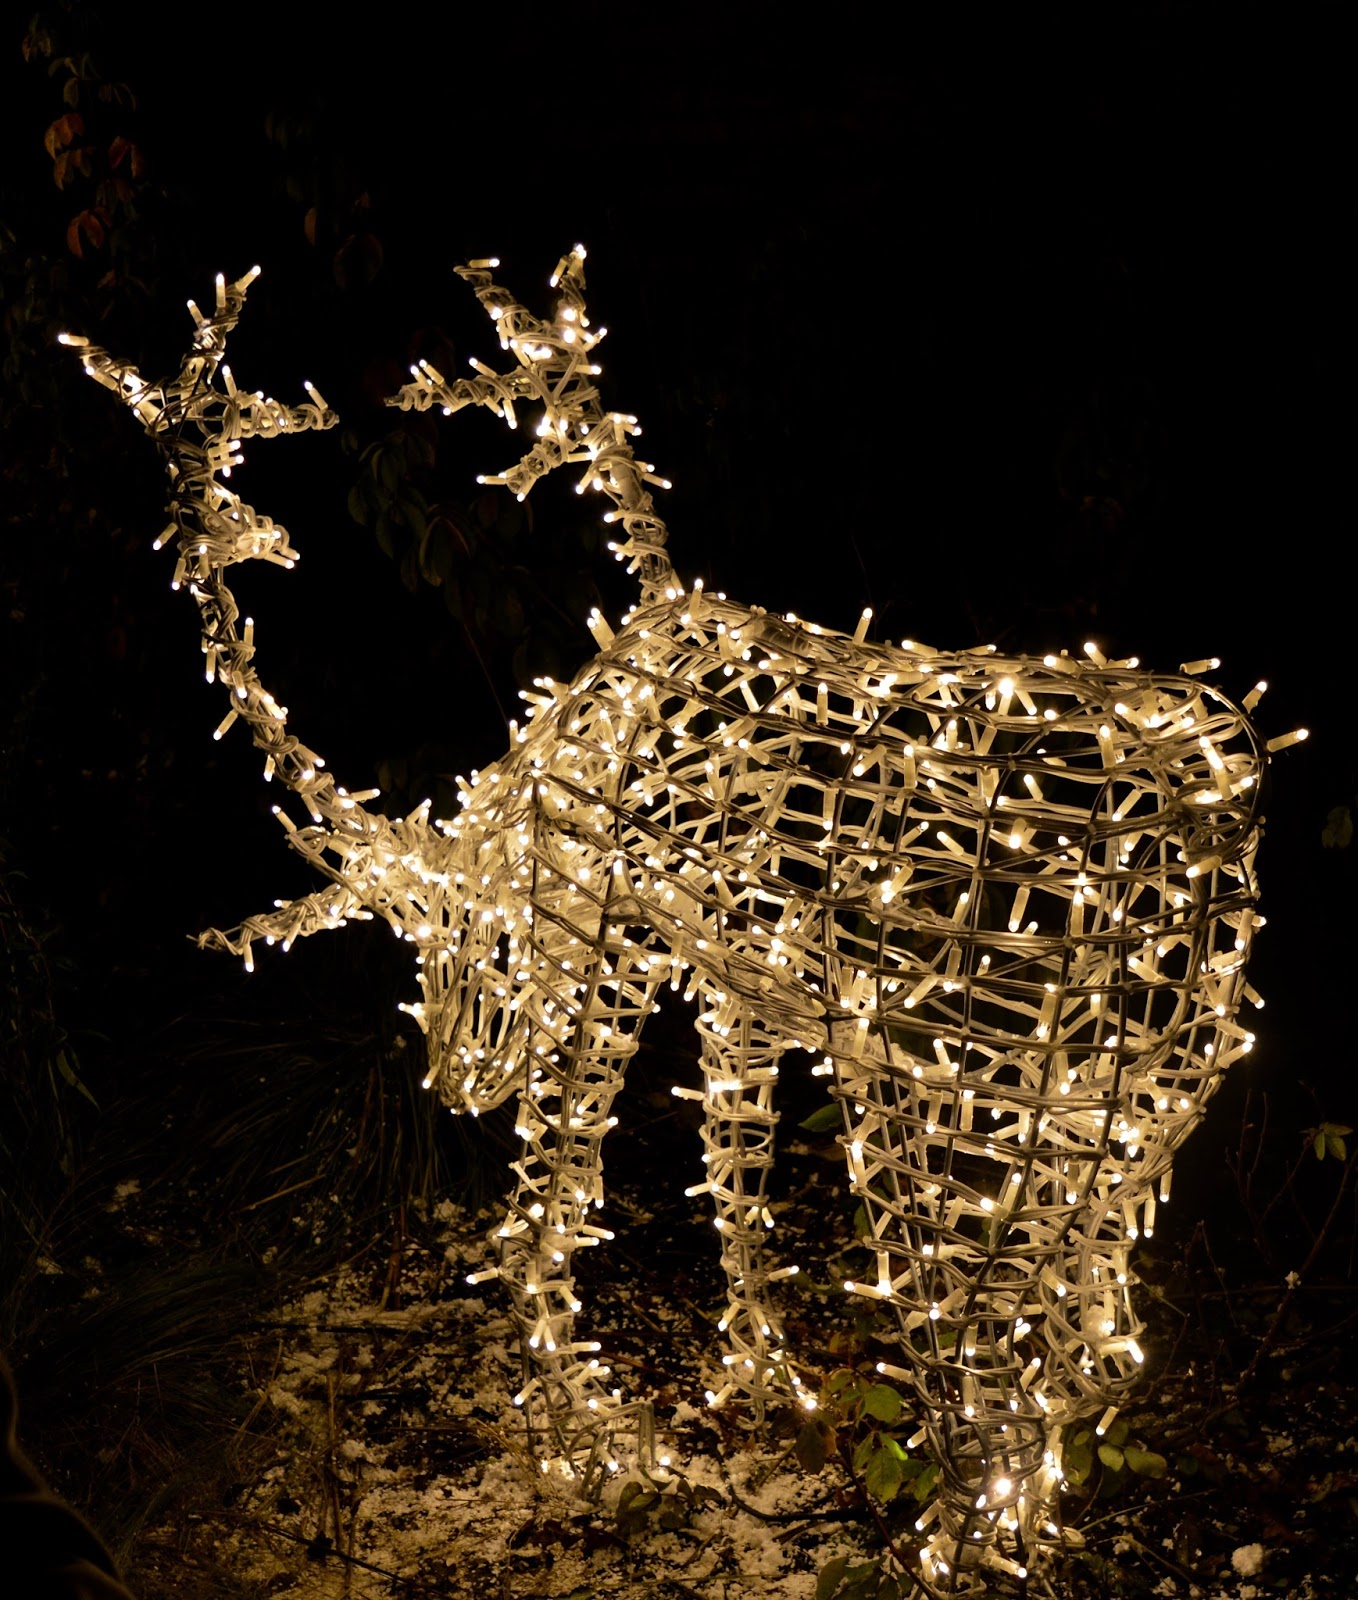 12 winter garden lights html] - 28 images - atlanta botanical garden ...